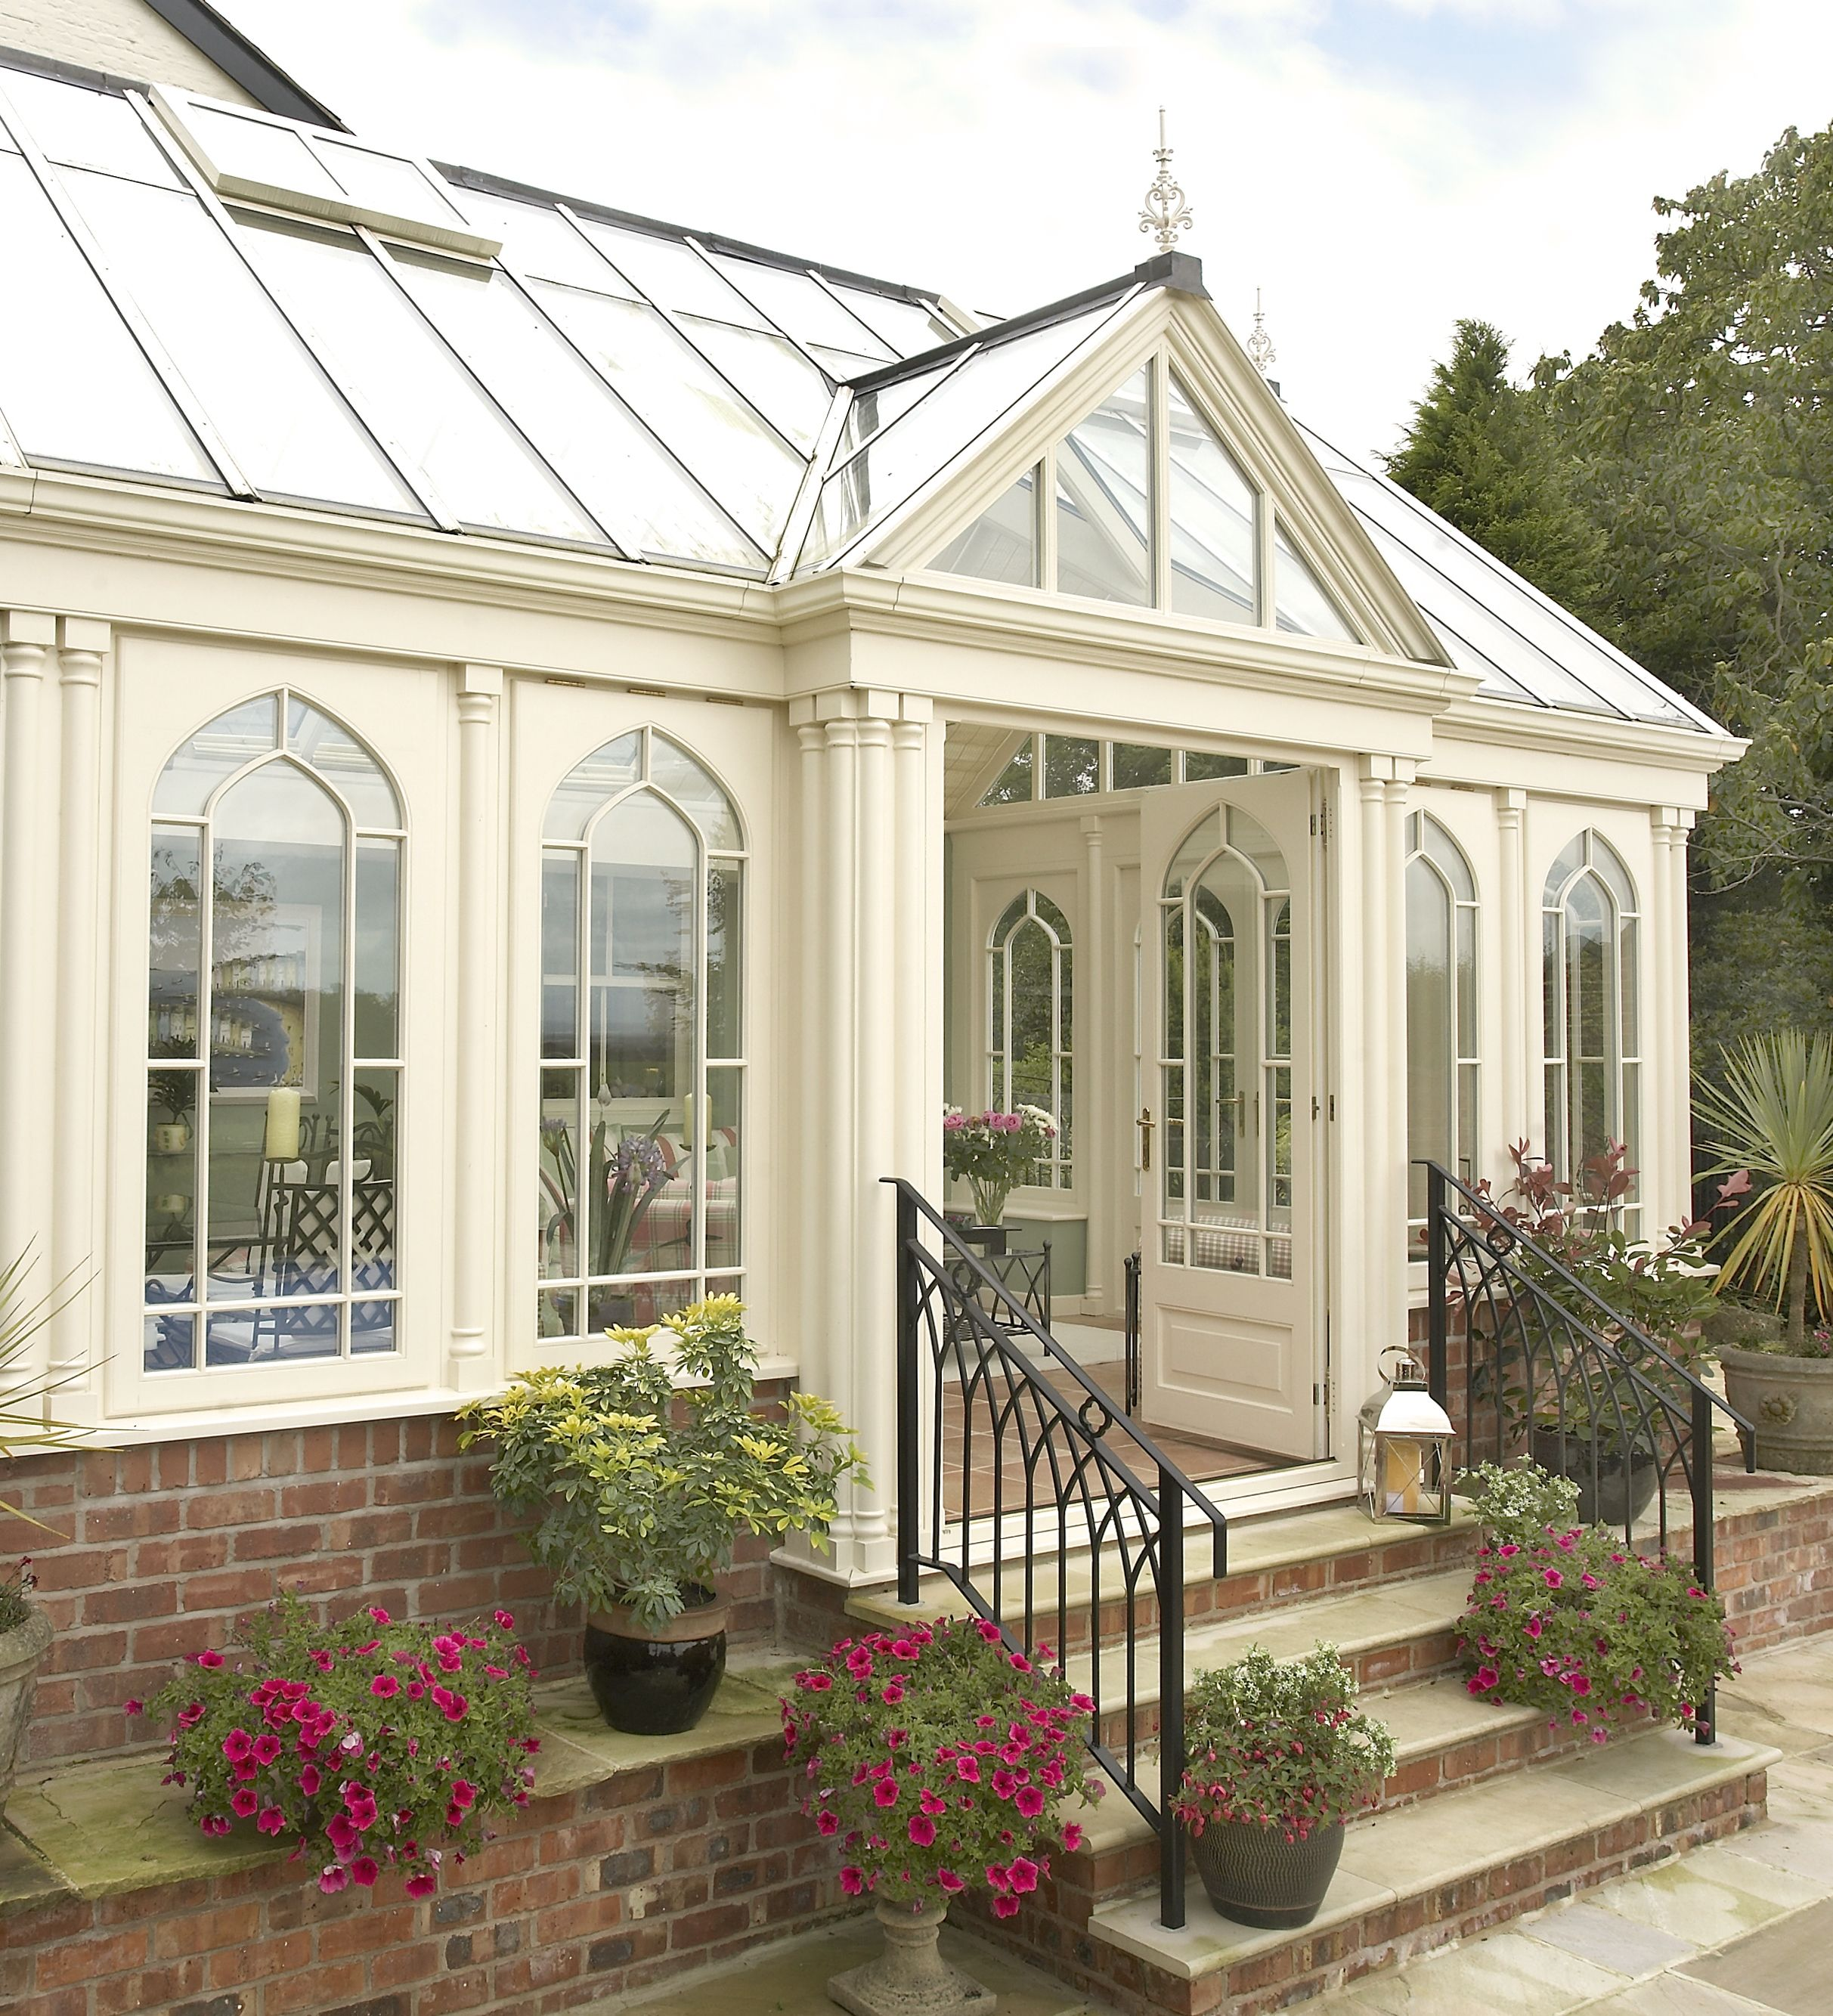 Parish Conservatories Of Fairfield Ct, Provides Design And Construction Of